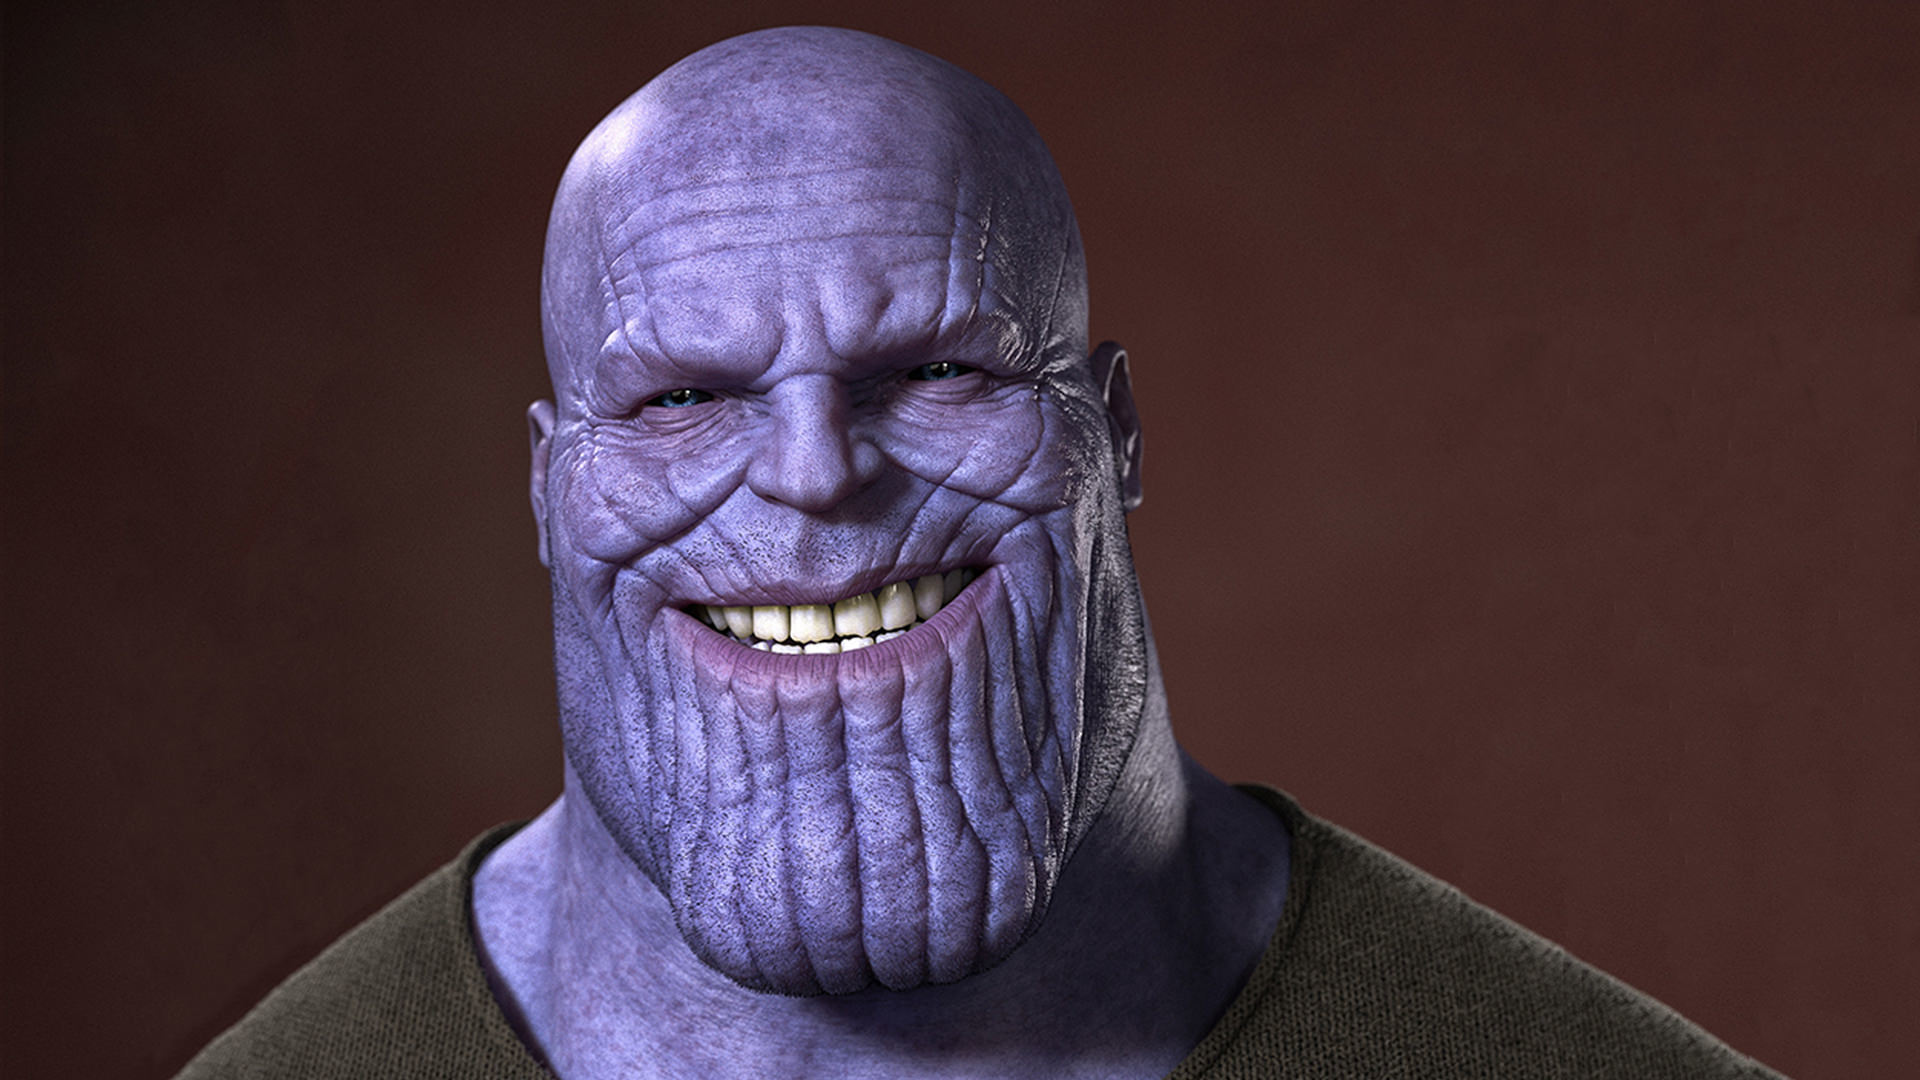 Thanos Smiling Wallpaper, HD Movies 4K Wallpapers, Images